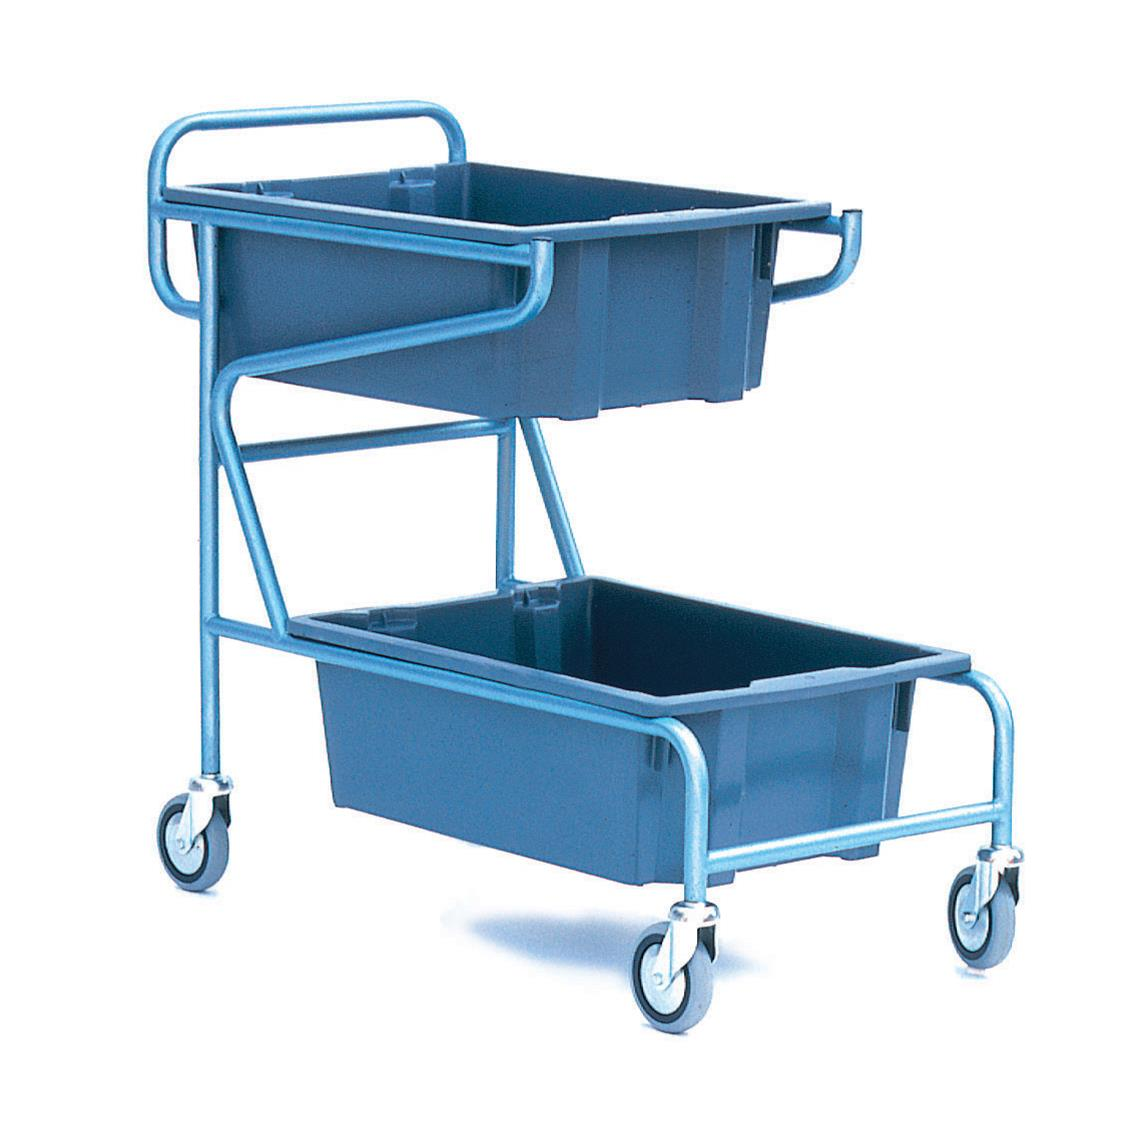 Warehouse / Order Picking Trolley